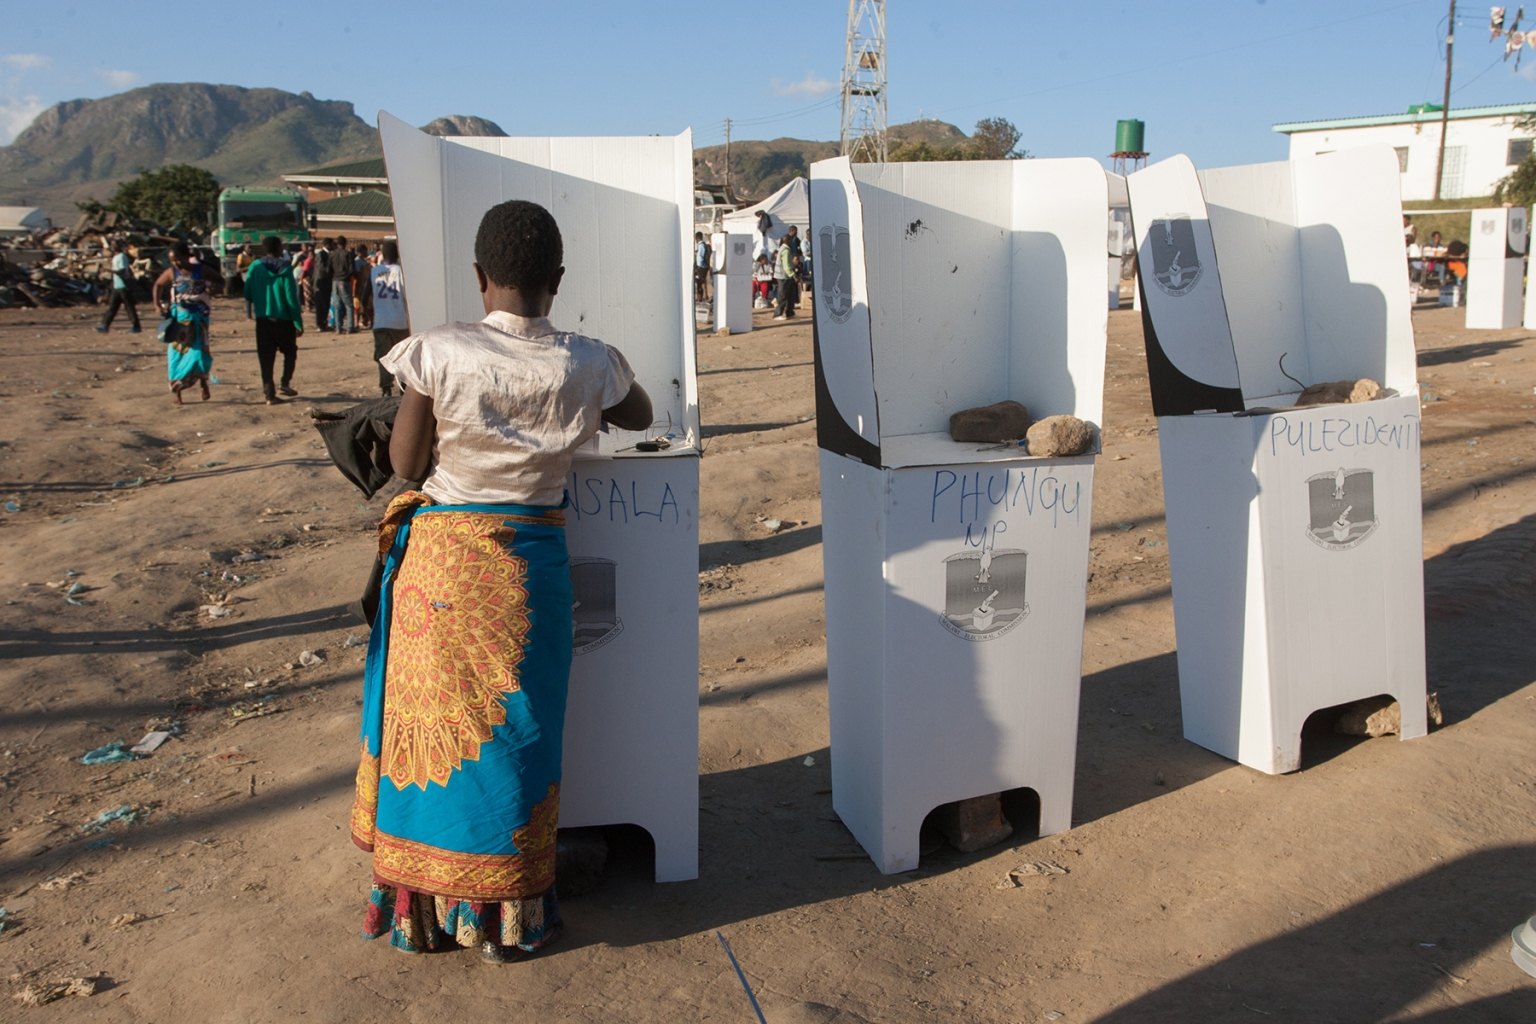 A woman casts her vote at the Ndirande Community ground polling center in Blantyre, southern Malawi, during the country general elections on May 21. AMOS GUMULIRA/AFP/Getty Images